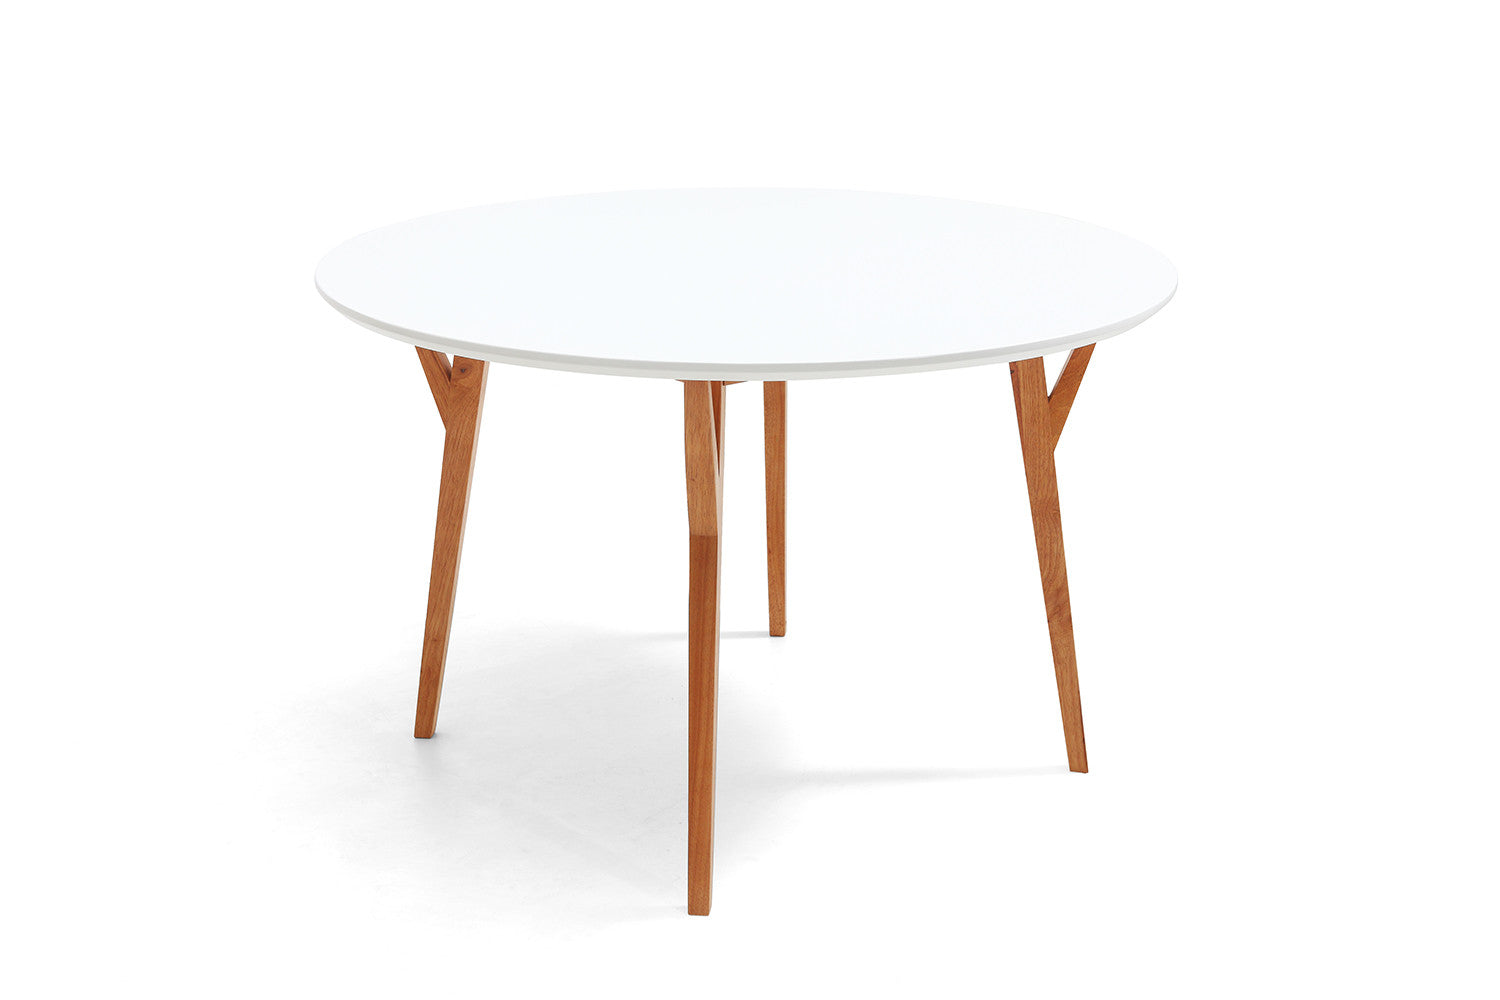 Table de salle manger ronde design scandinave moesa - Table salle a manger ronde ...